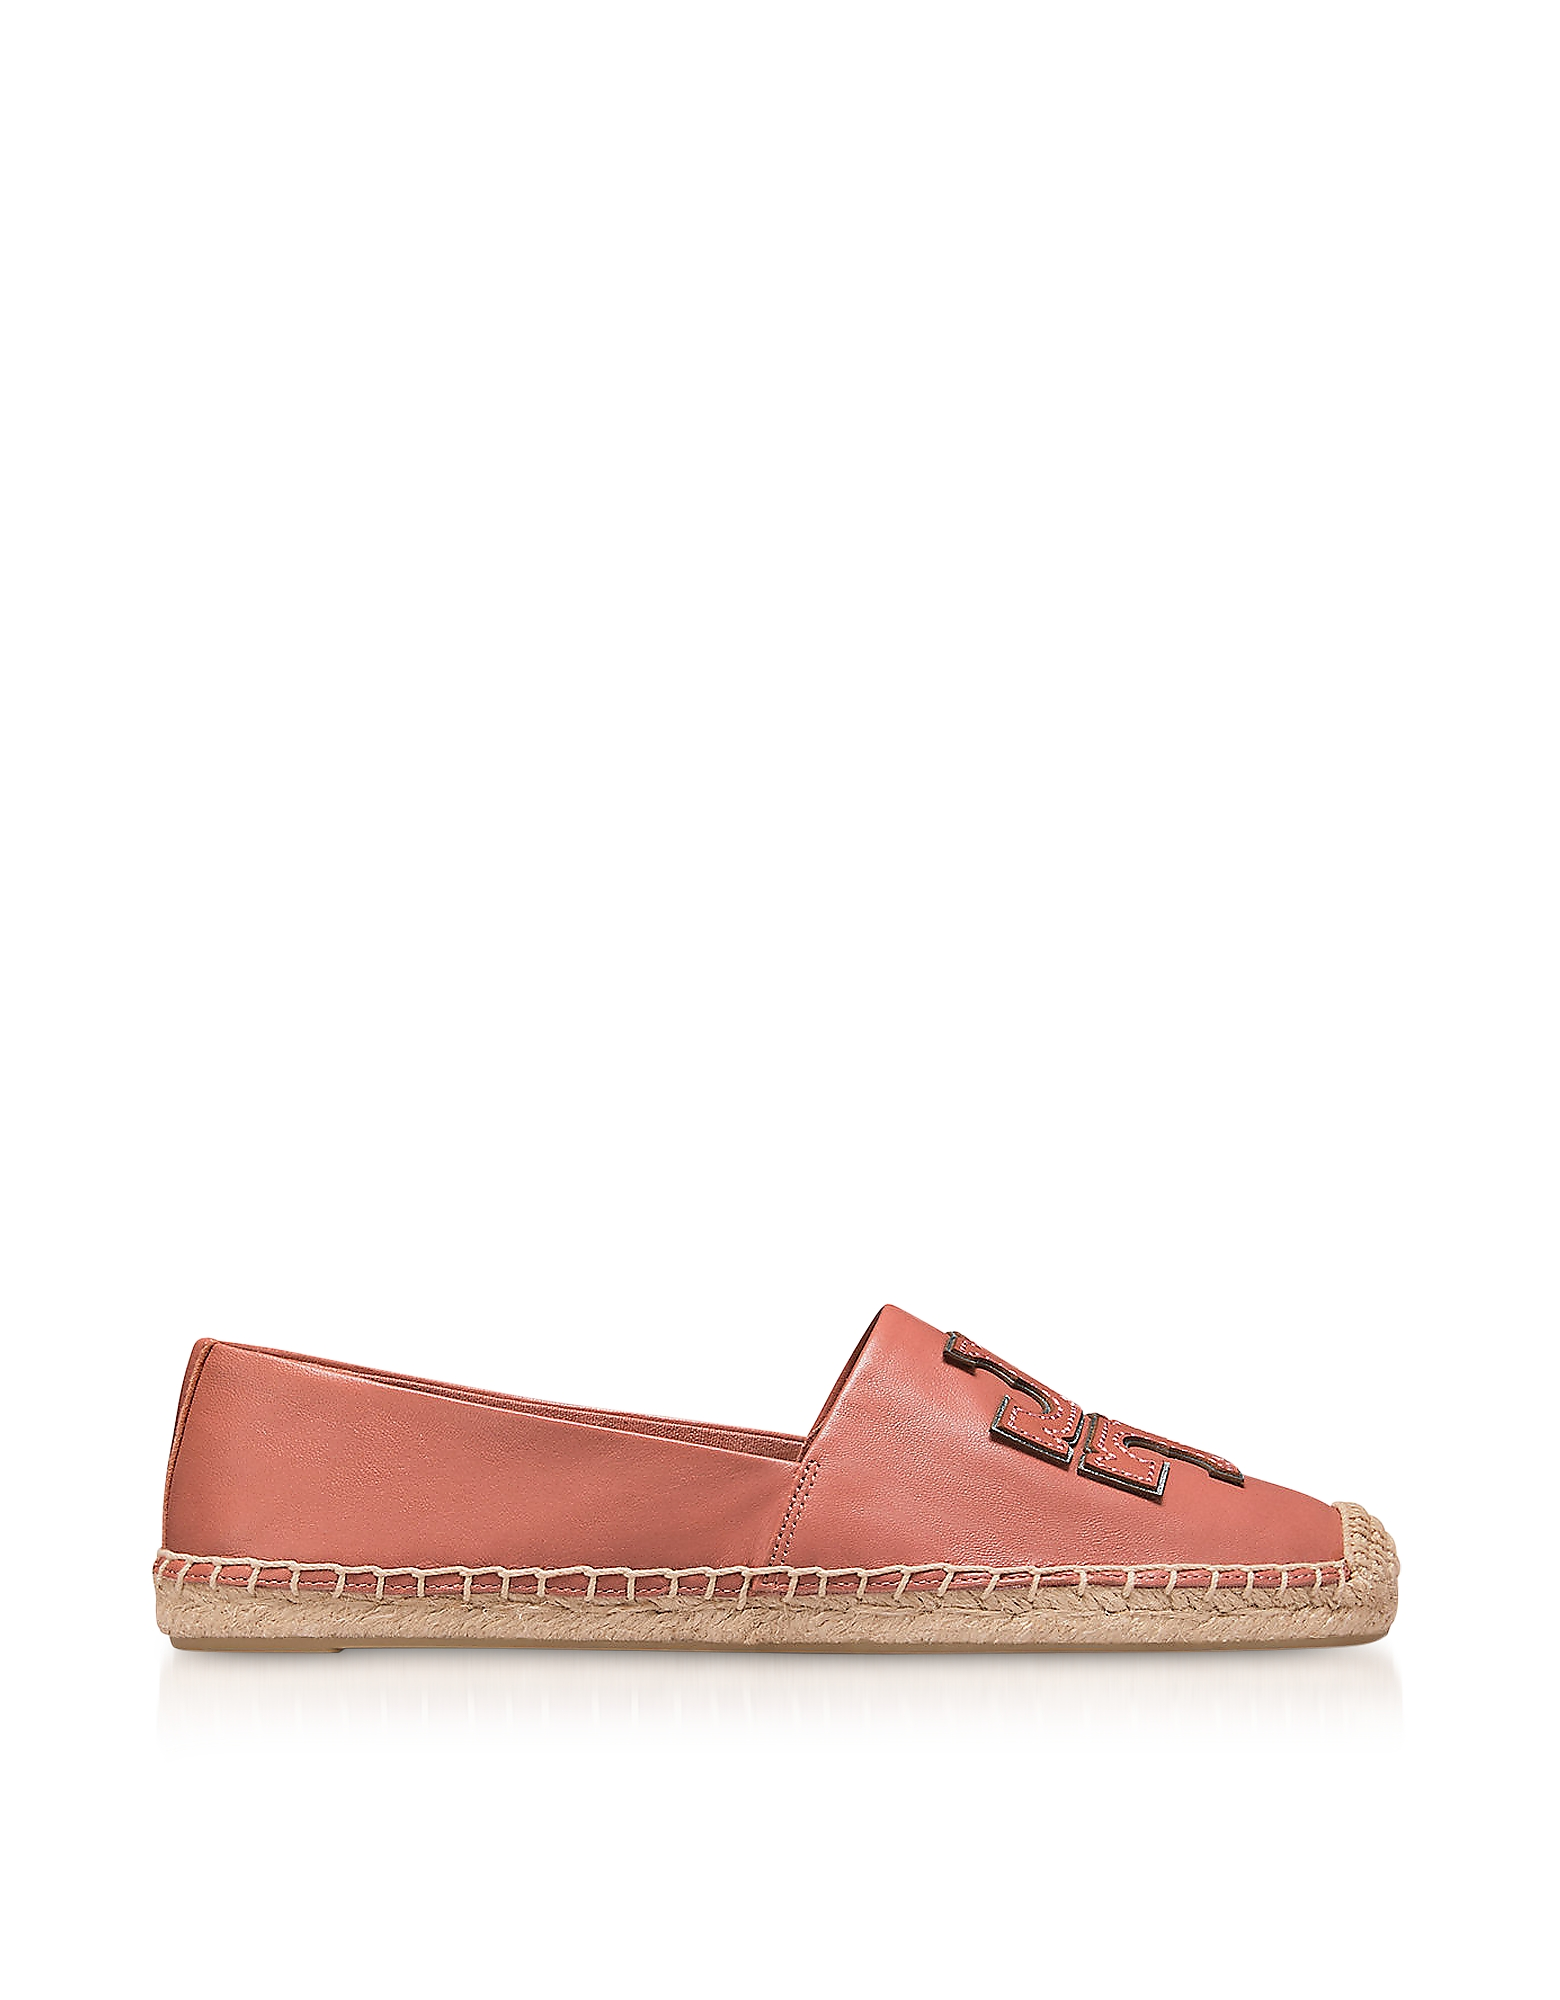 Tory Burch Shoes, Tramonto Spark Gold Ines Espadrilles